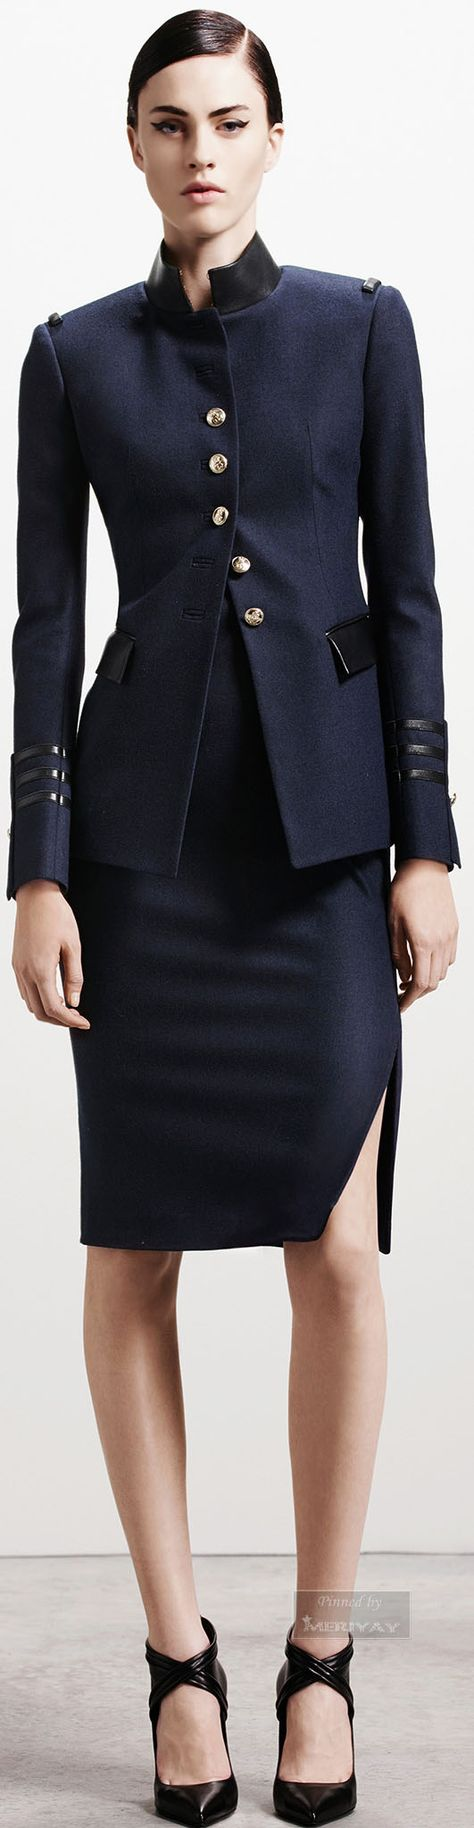 Modern Picture The Forties Military influence on women's suits